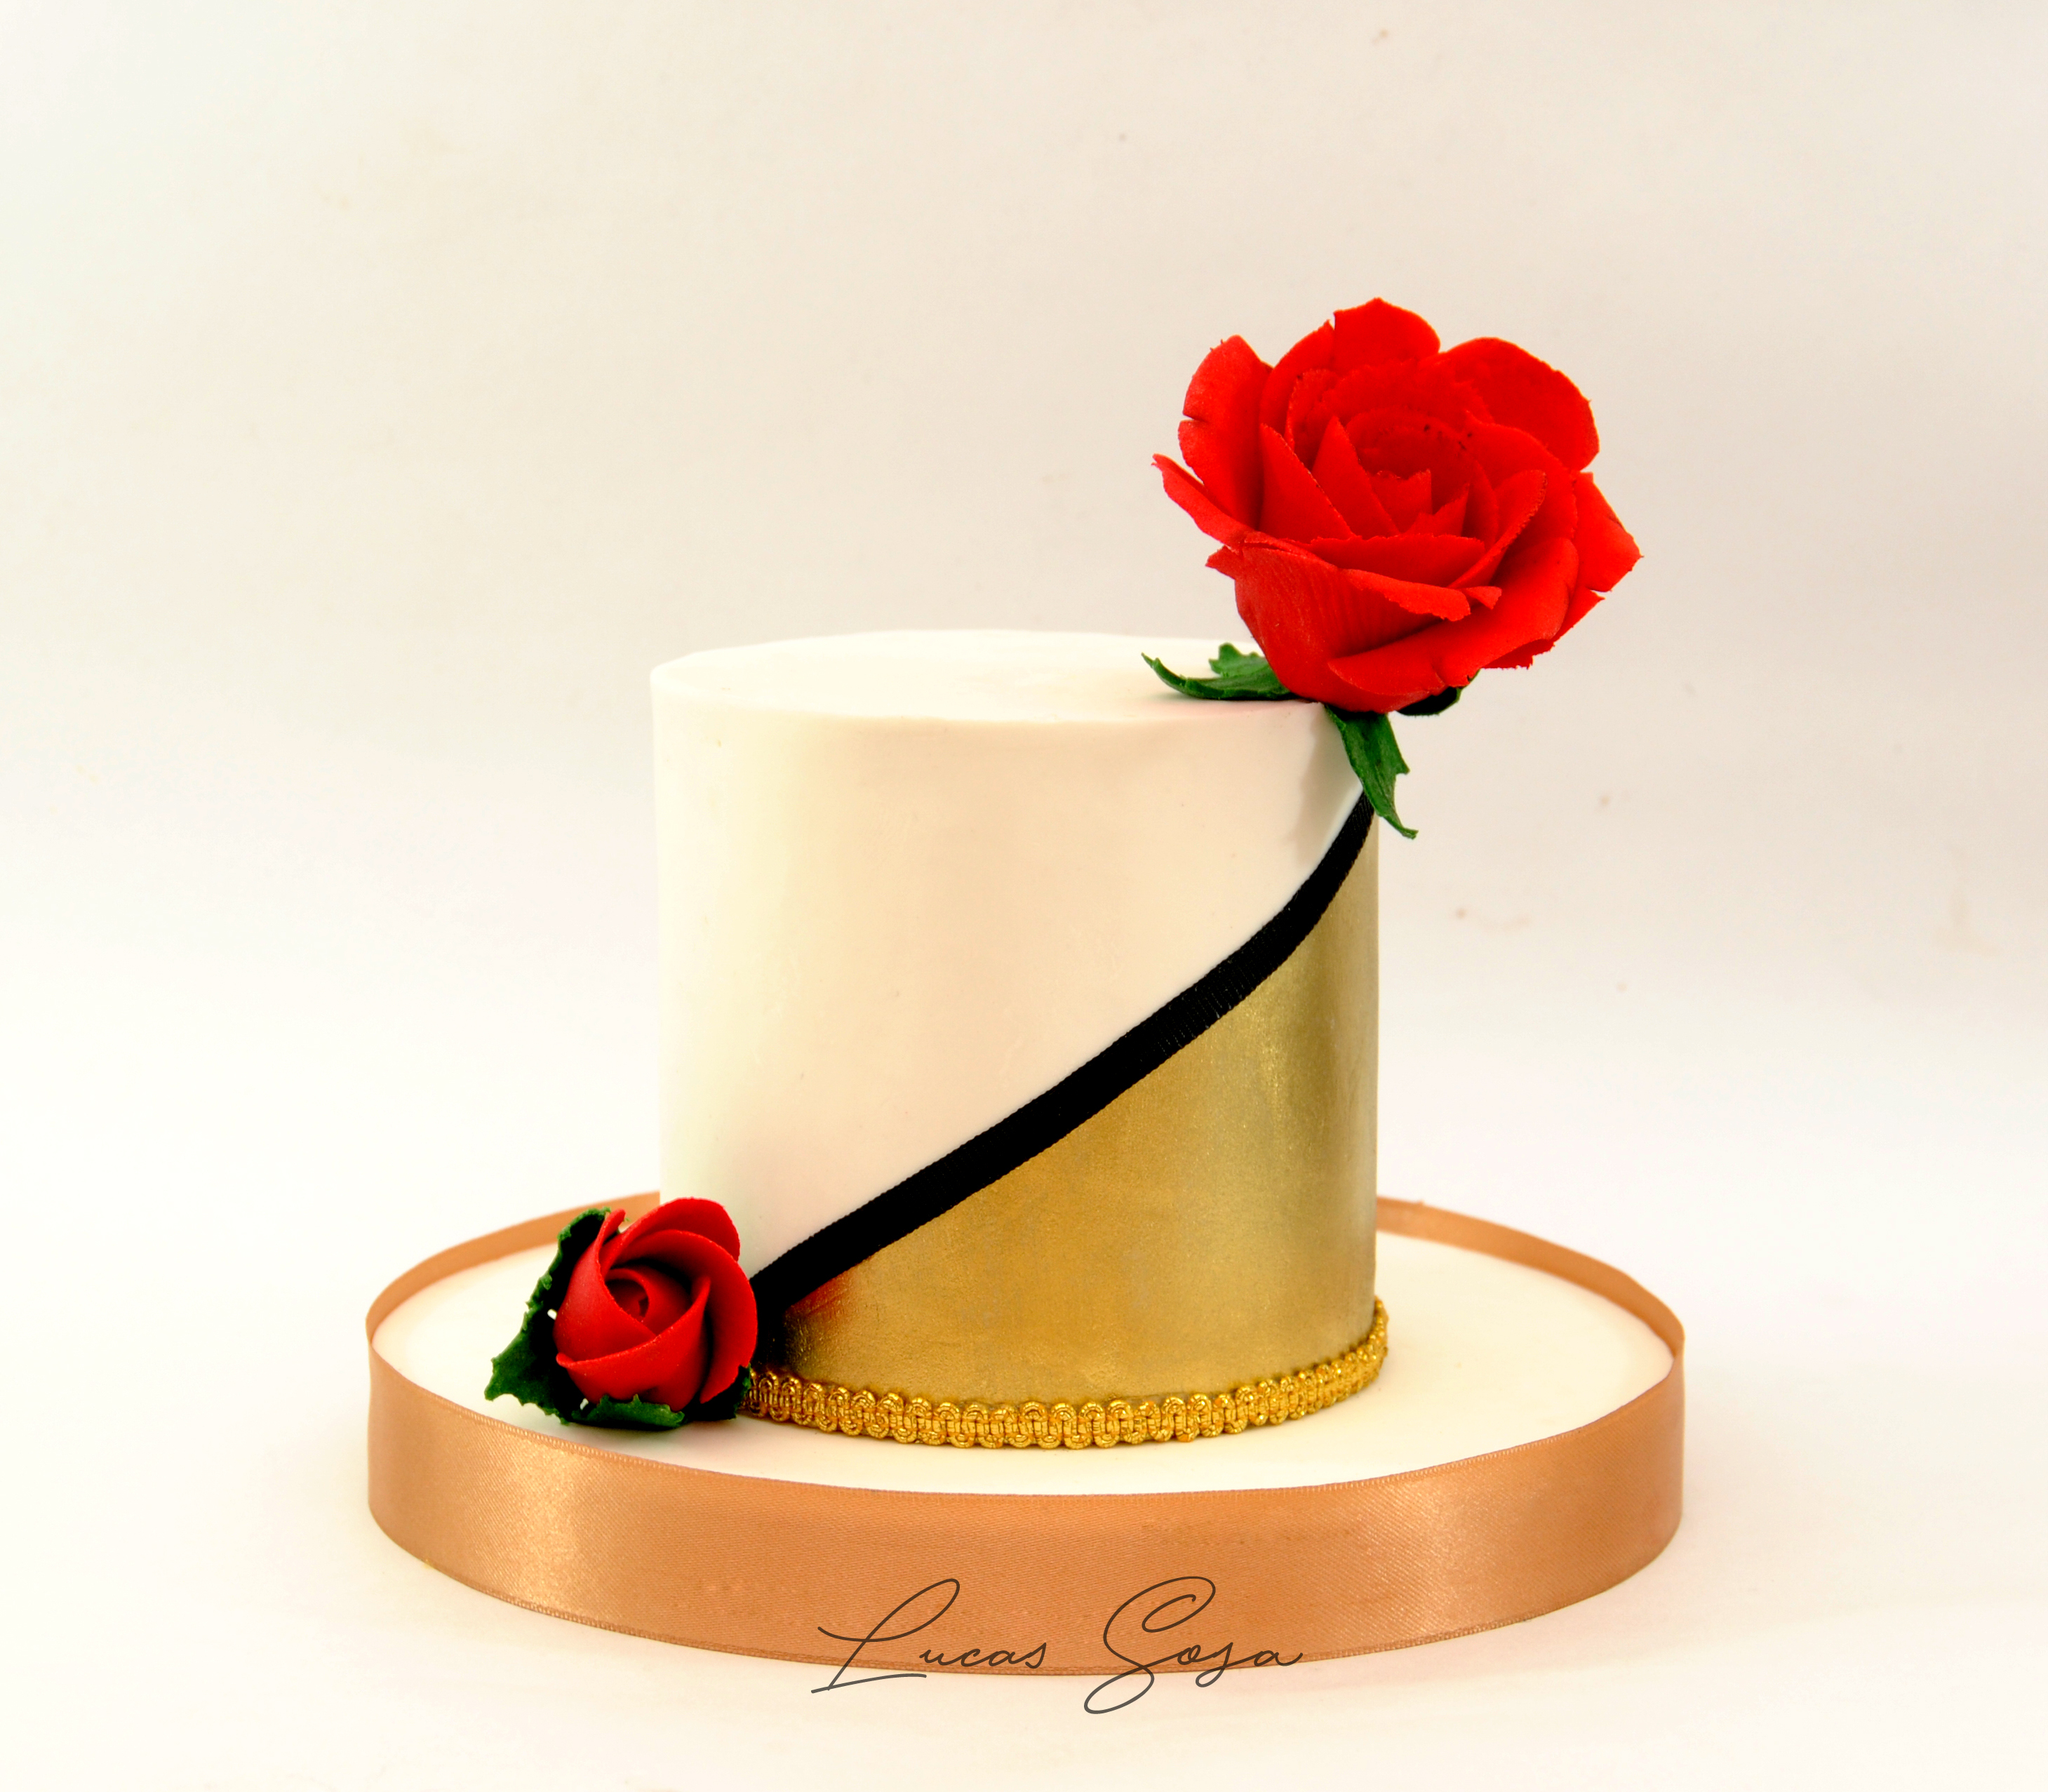 White fondant cake with red sugar flowers